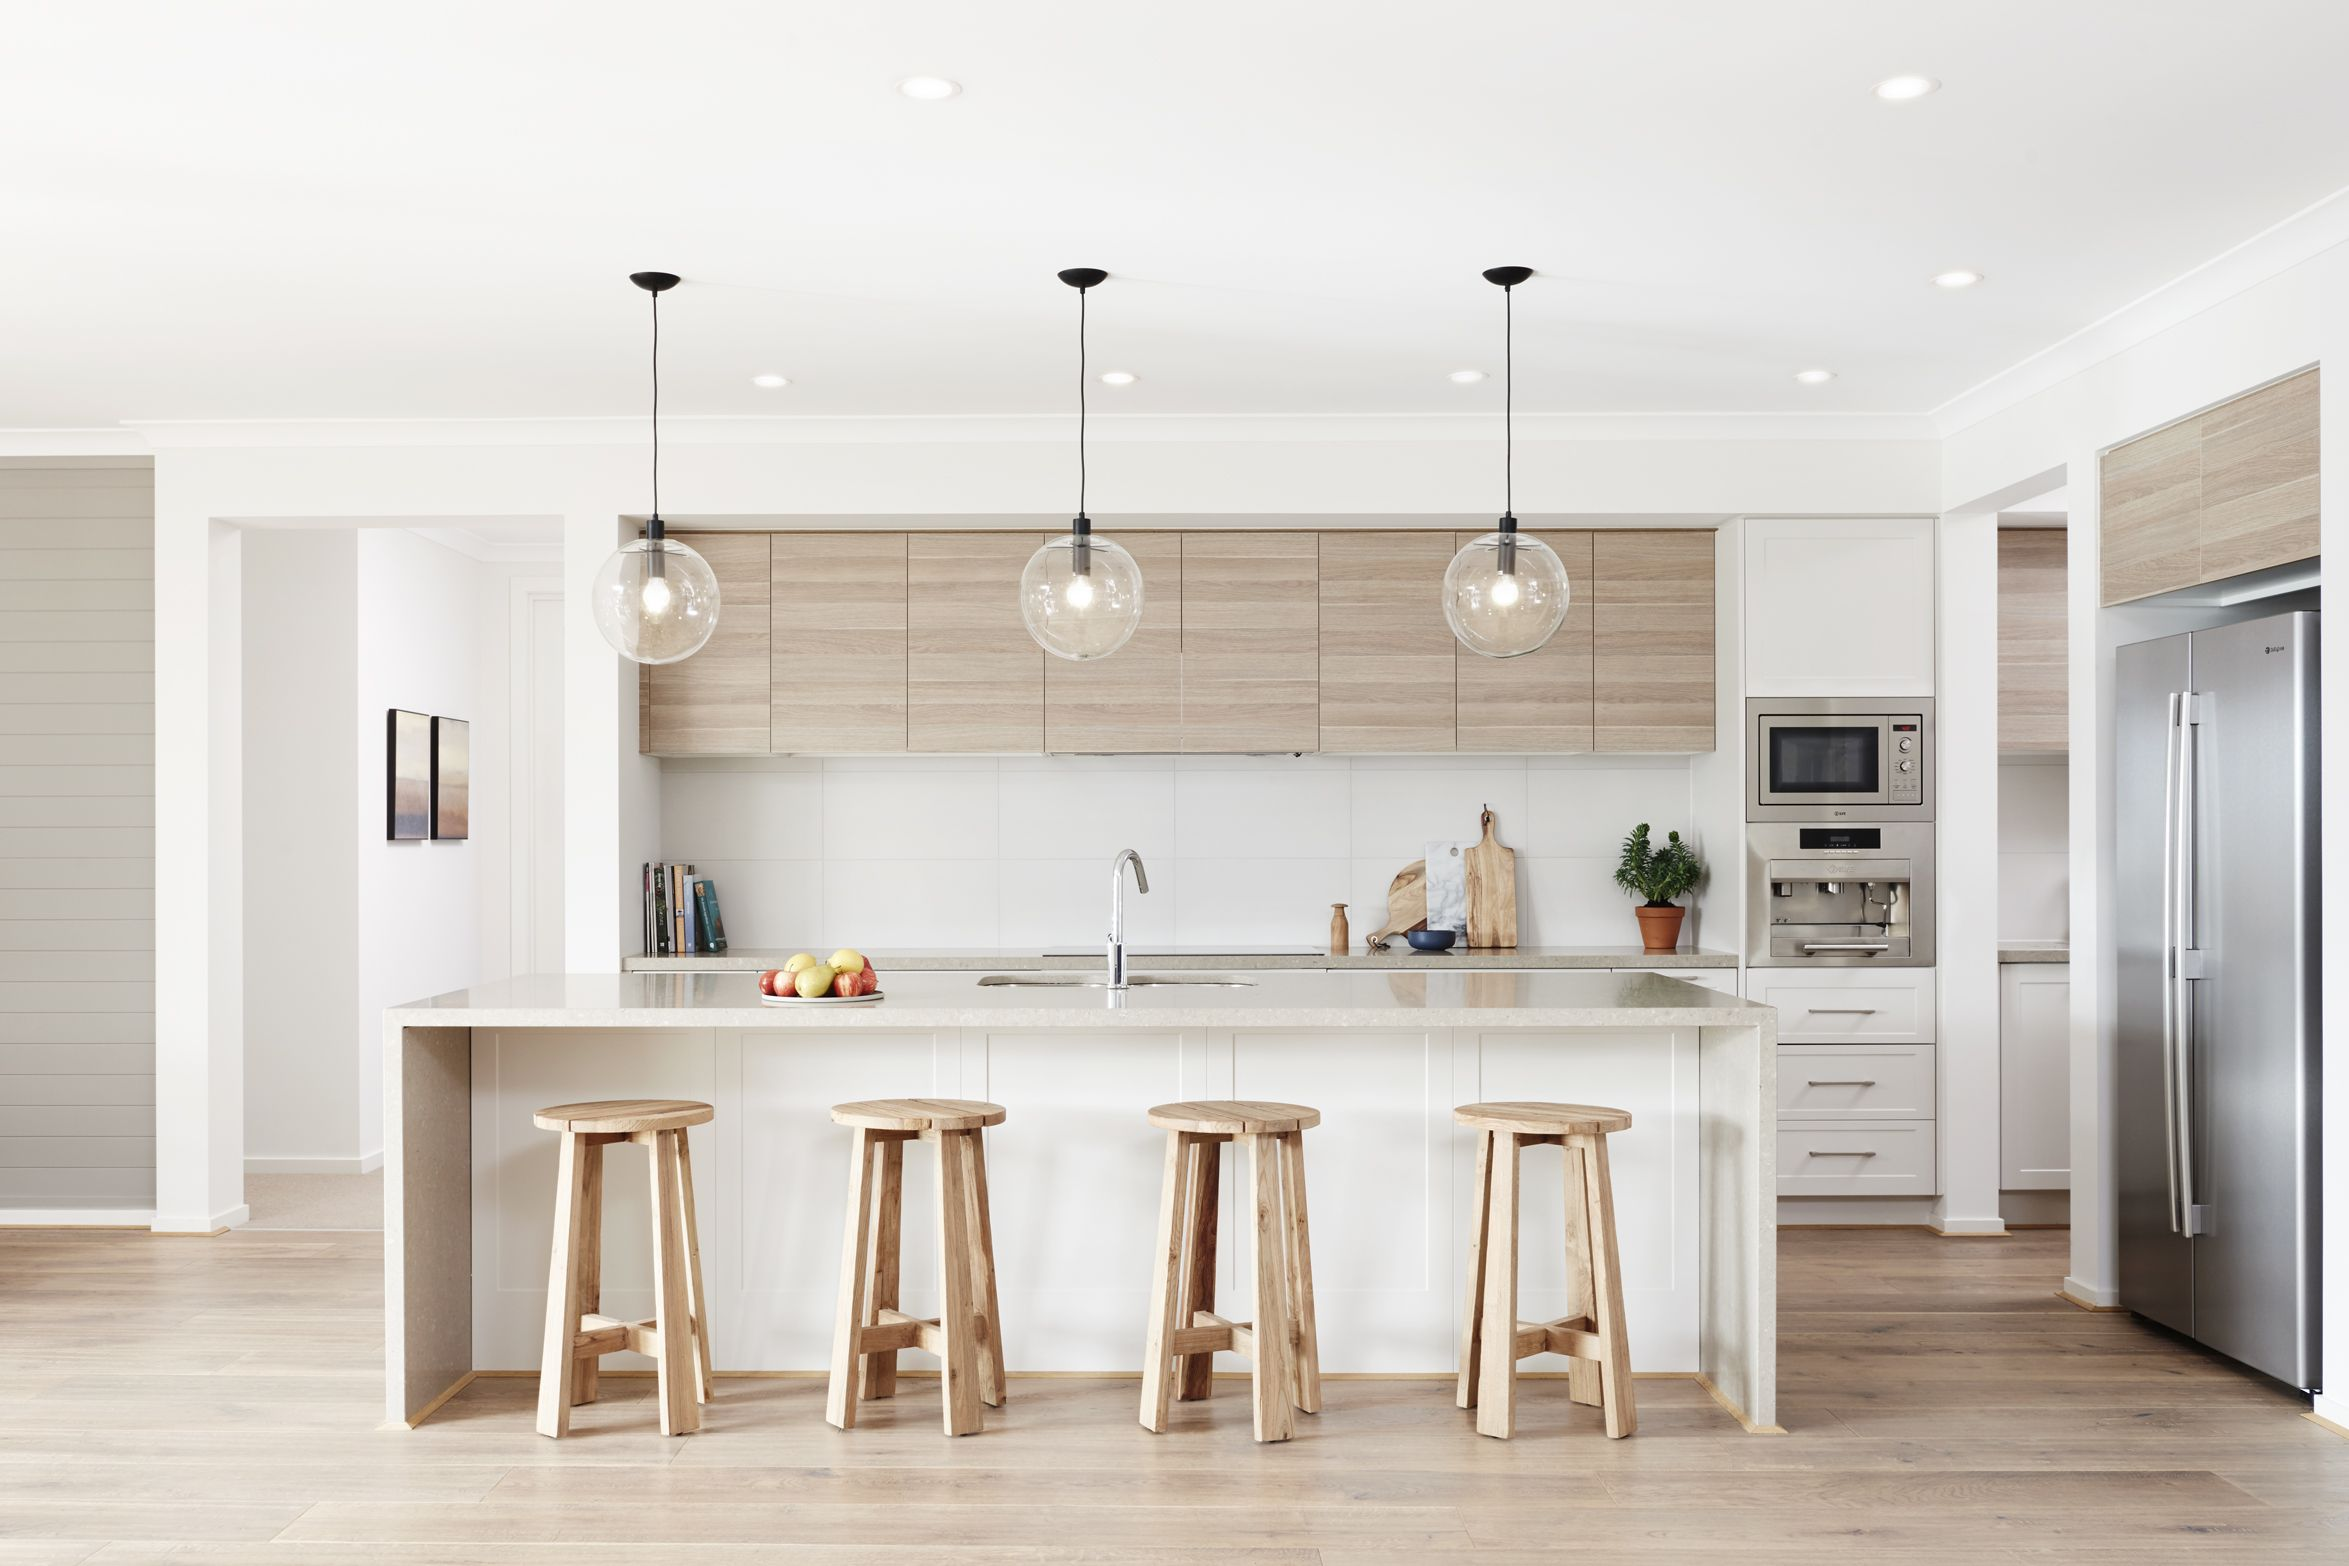 Madera Y Blanco Lamparas Colgantes Elegant Kitchen Design